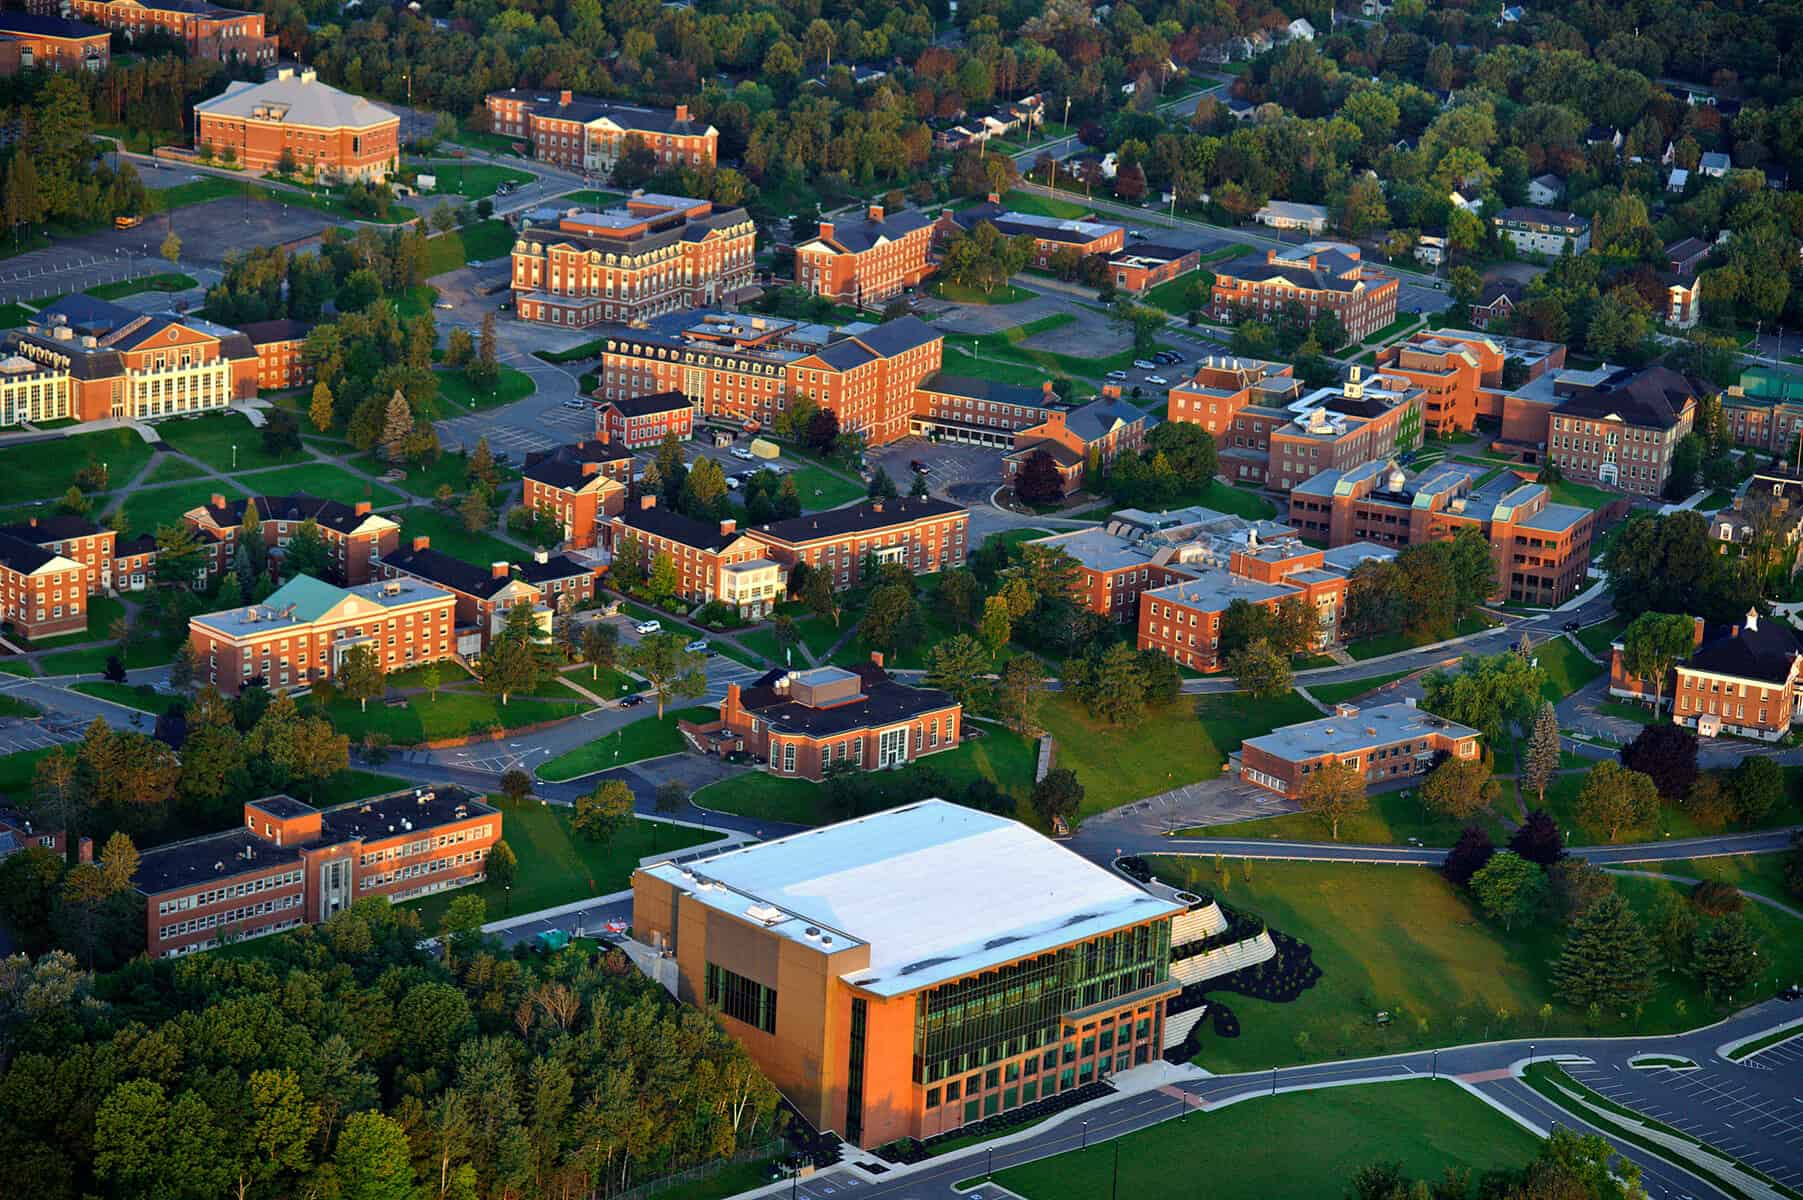 An aerial shot of the University of New Brunswick's campus.